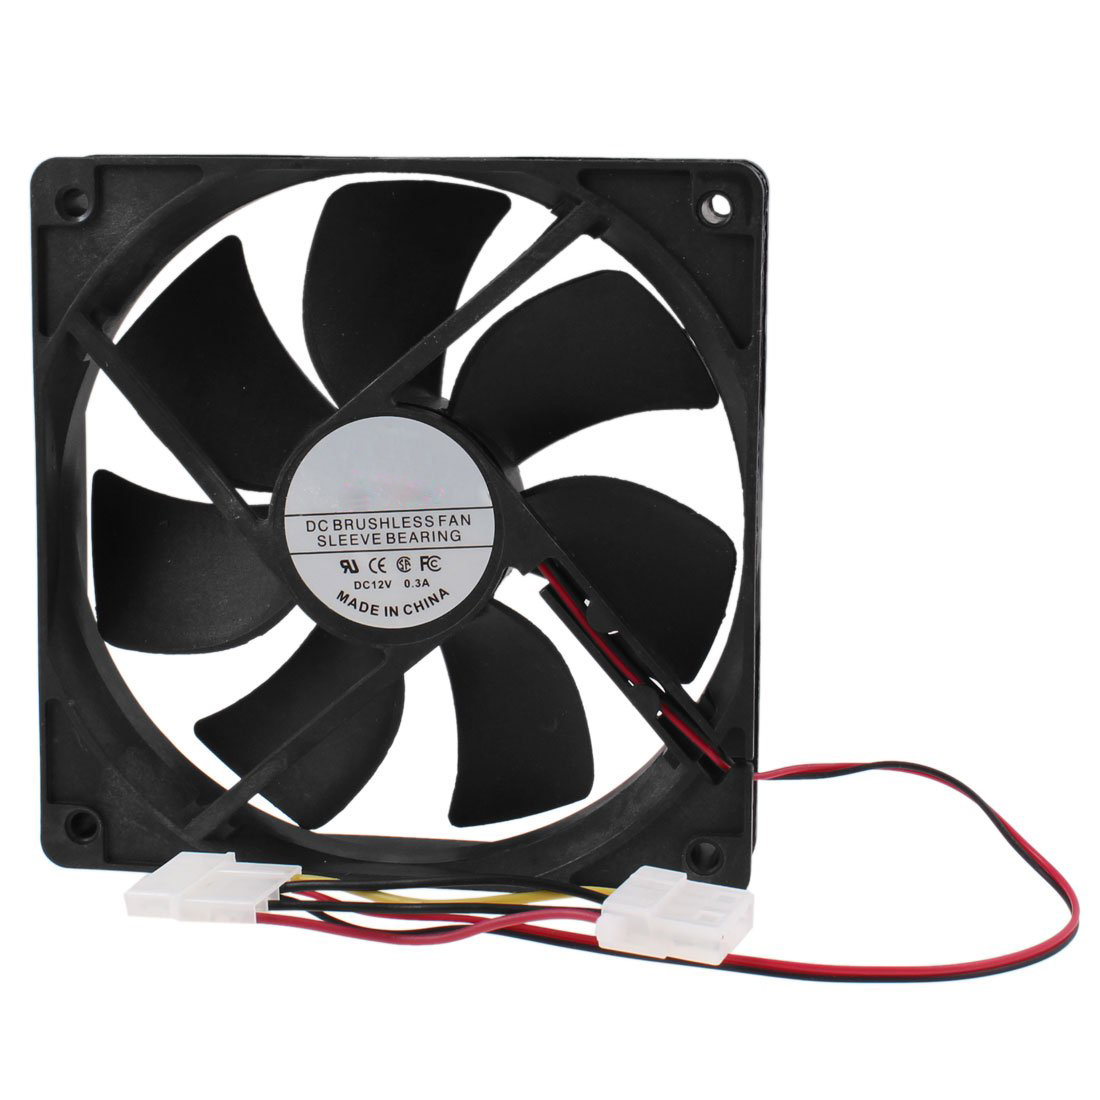 PC Brushless DC Cooling Fan 4 Pin Connector 7 Blades 12V 12cm 120mm 5010s dc 12v 0 1a brushless cooling fan 4 2cm diameter page 1